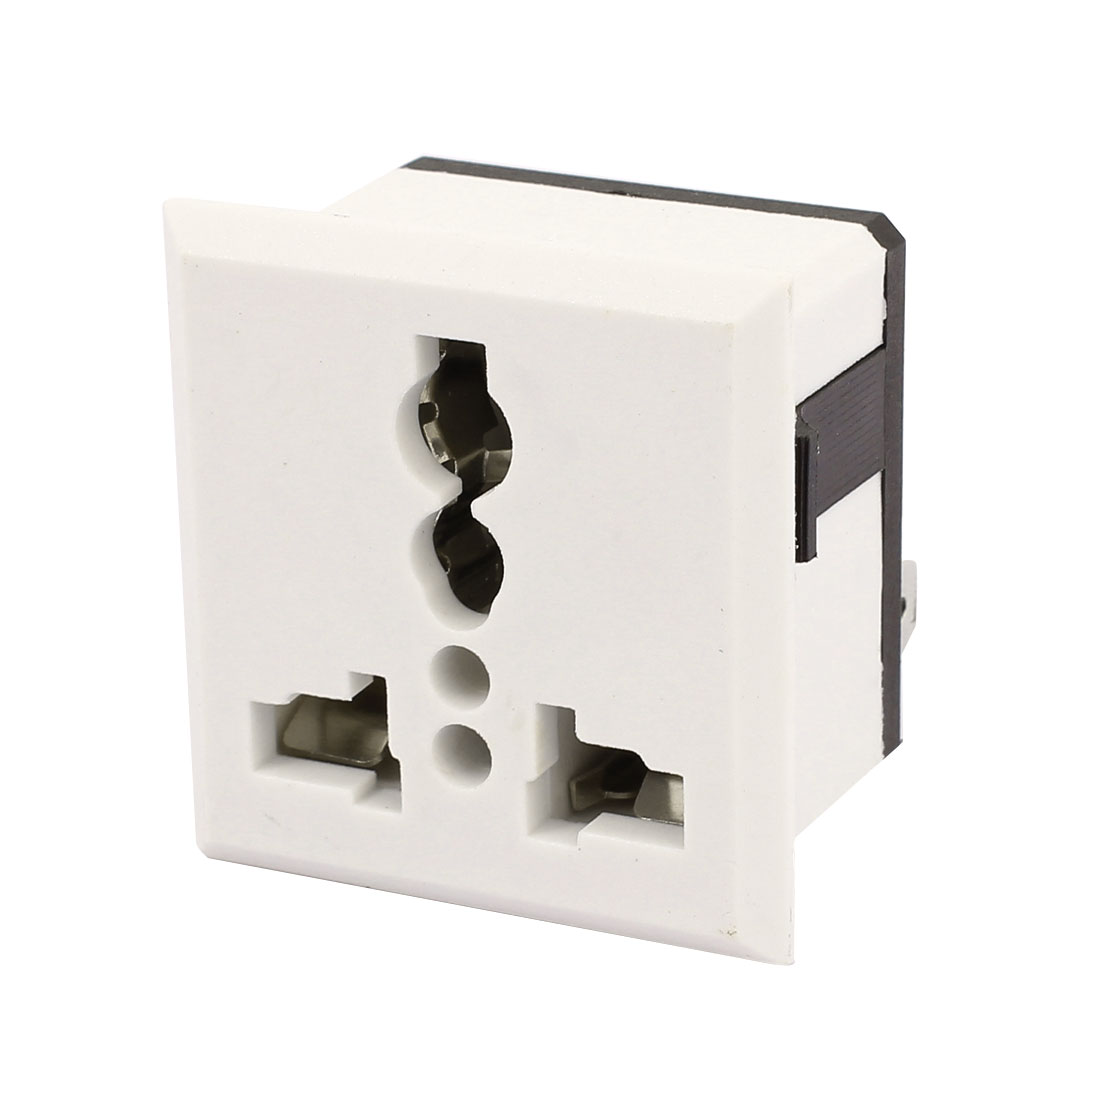 SS-801 AC 250V 16A 3 Terminals Universal Panel Socket Plug Outlet White